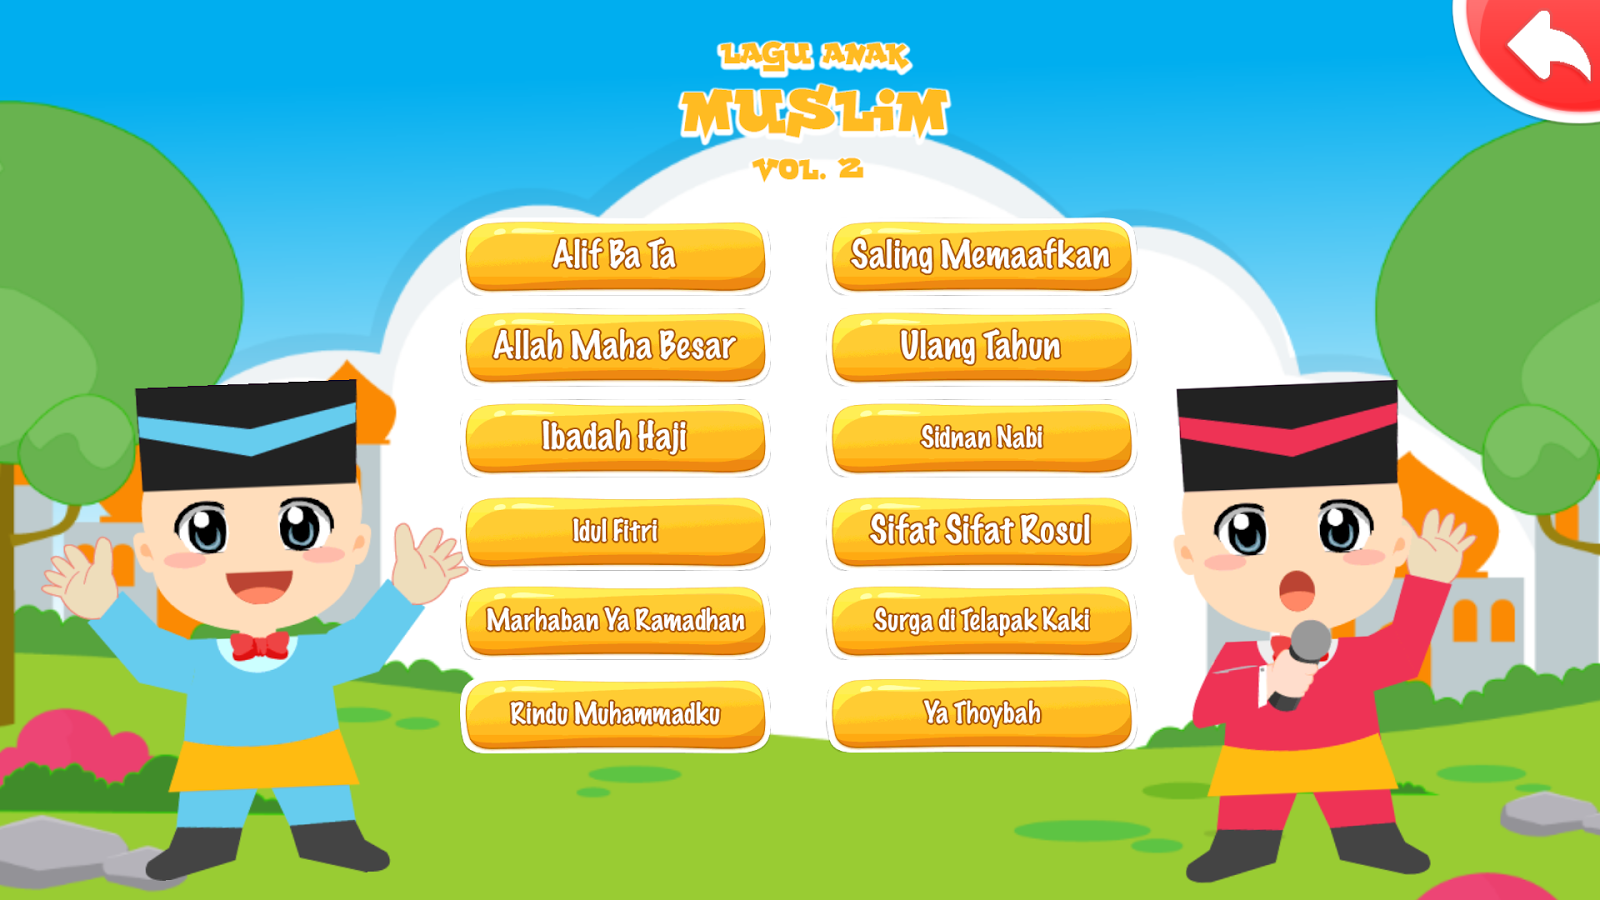 Lagu Islami Anak Muslim Vol 2 Android Apps On Google Play